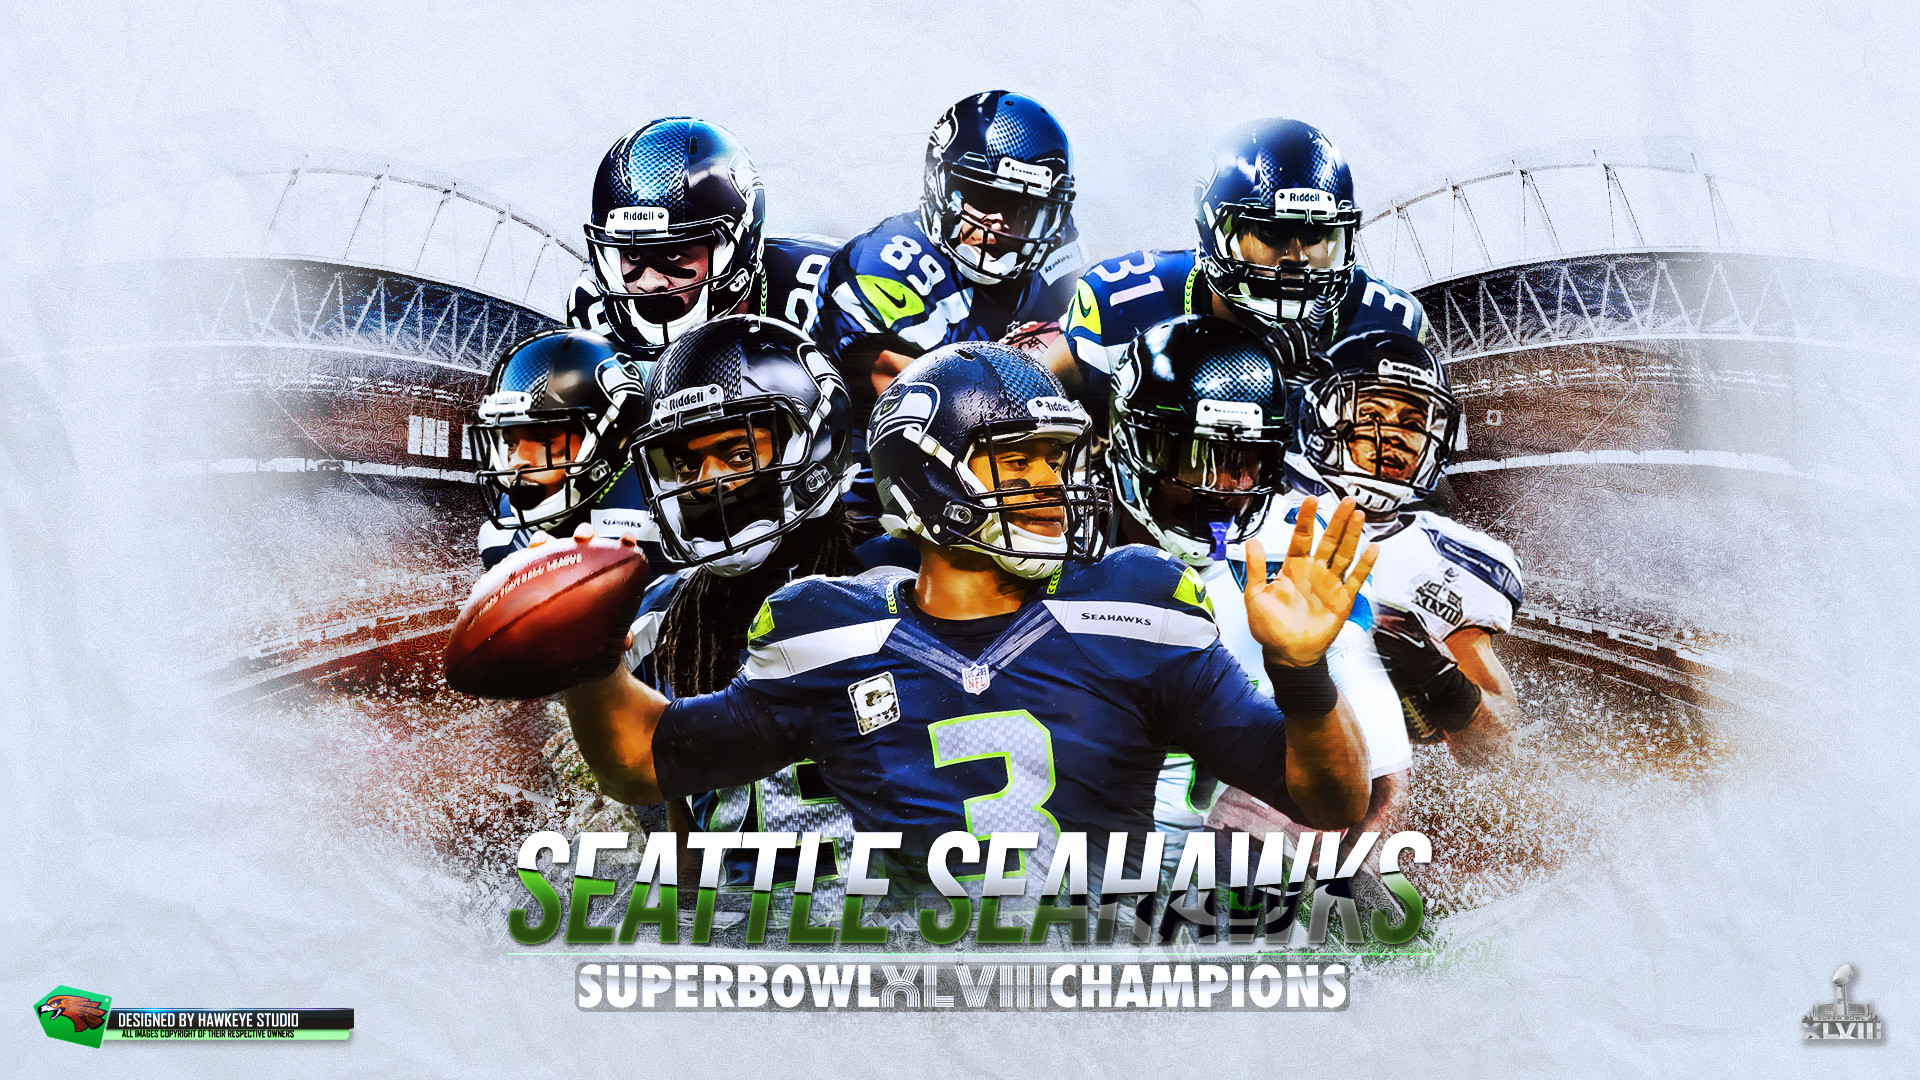 Seattle Seahawks Wallpaper 1920x1080: Seahawk Wallpaper ·①